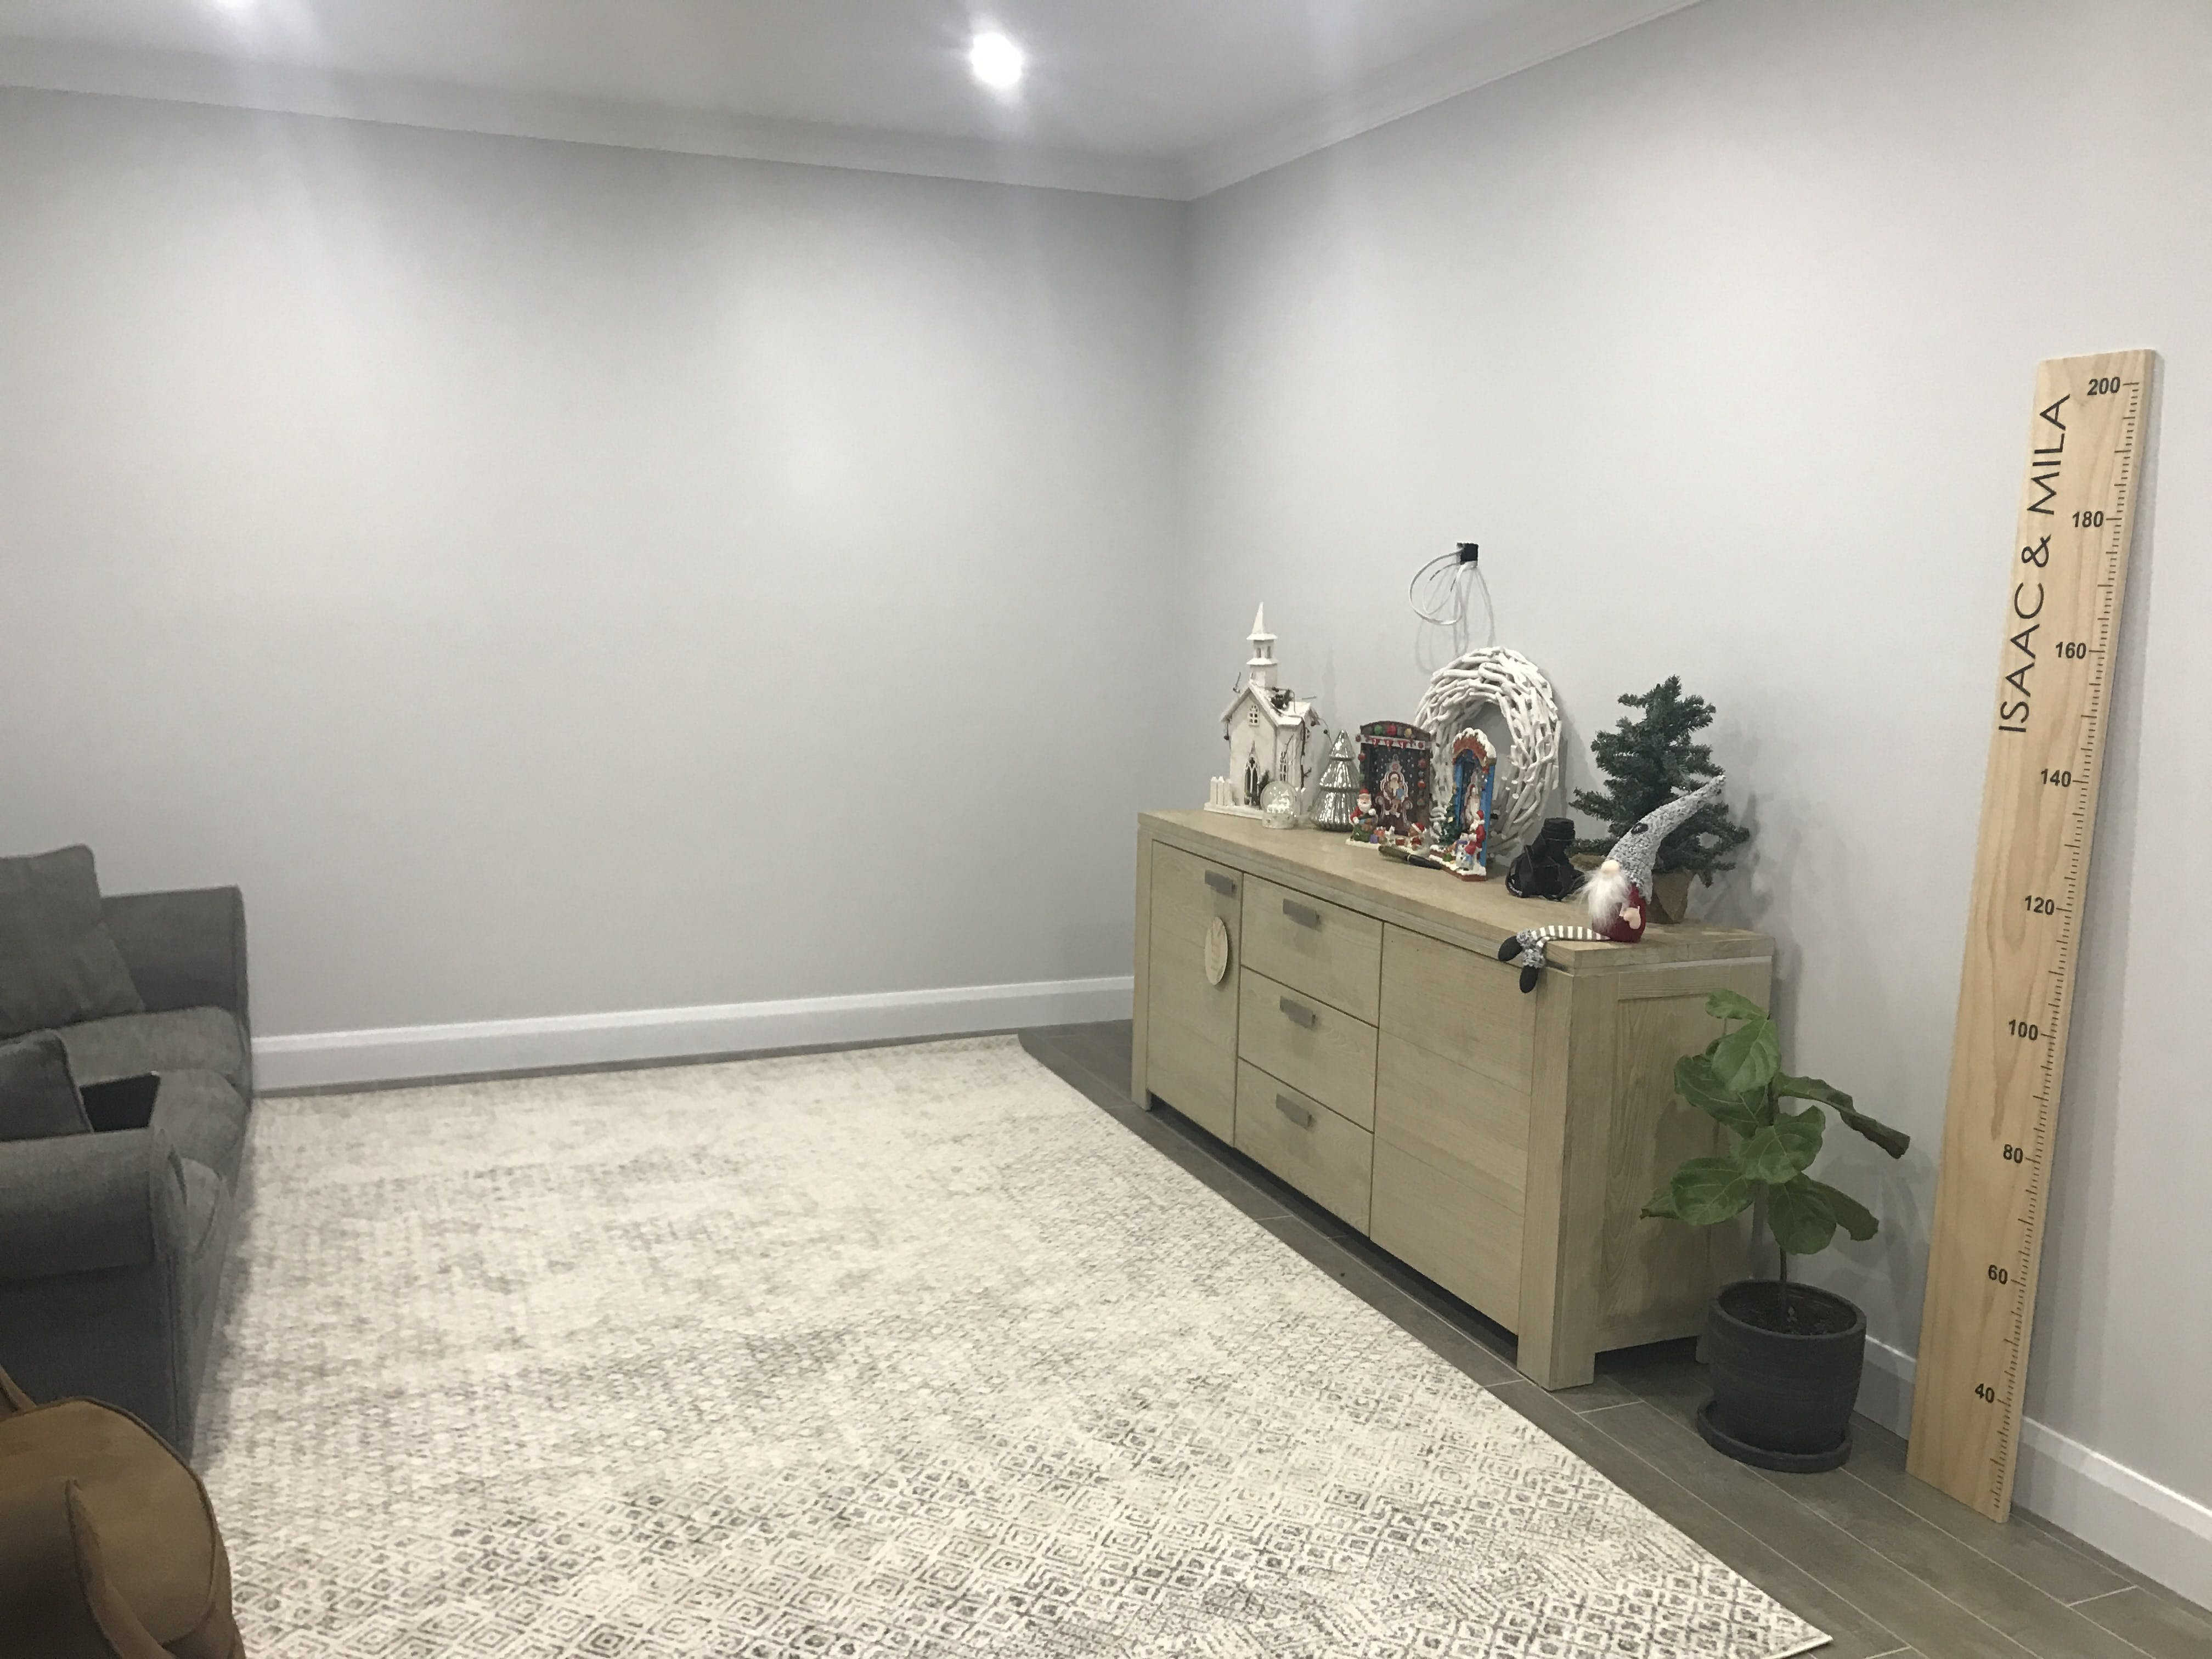 Rugsofbeauty Com Au Replied Hi Tara Thanks Very Much For Reviewing The Dacca Rug You Purchased From Us We Are So Glad That Hy With Your